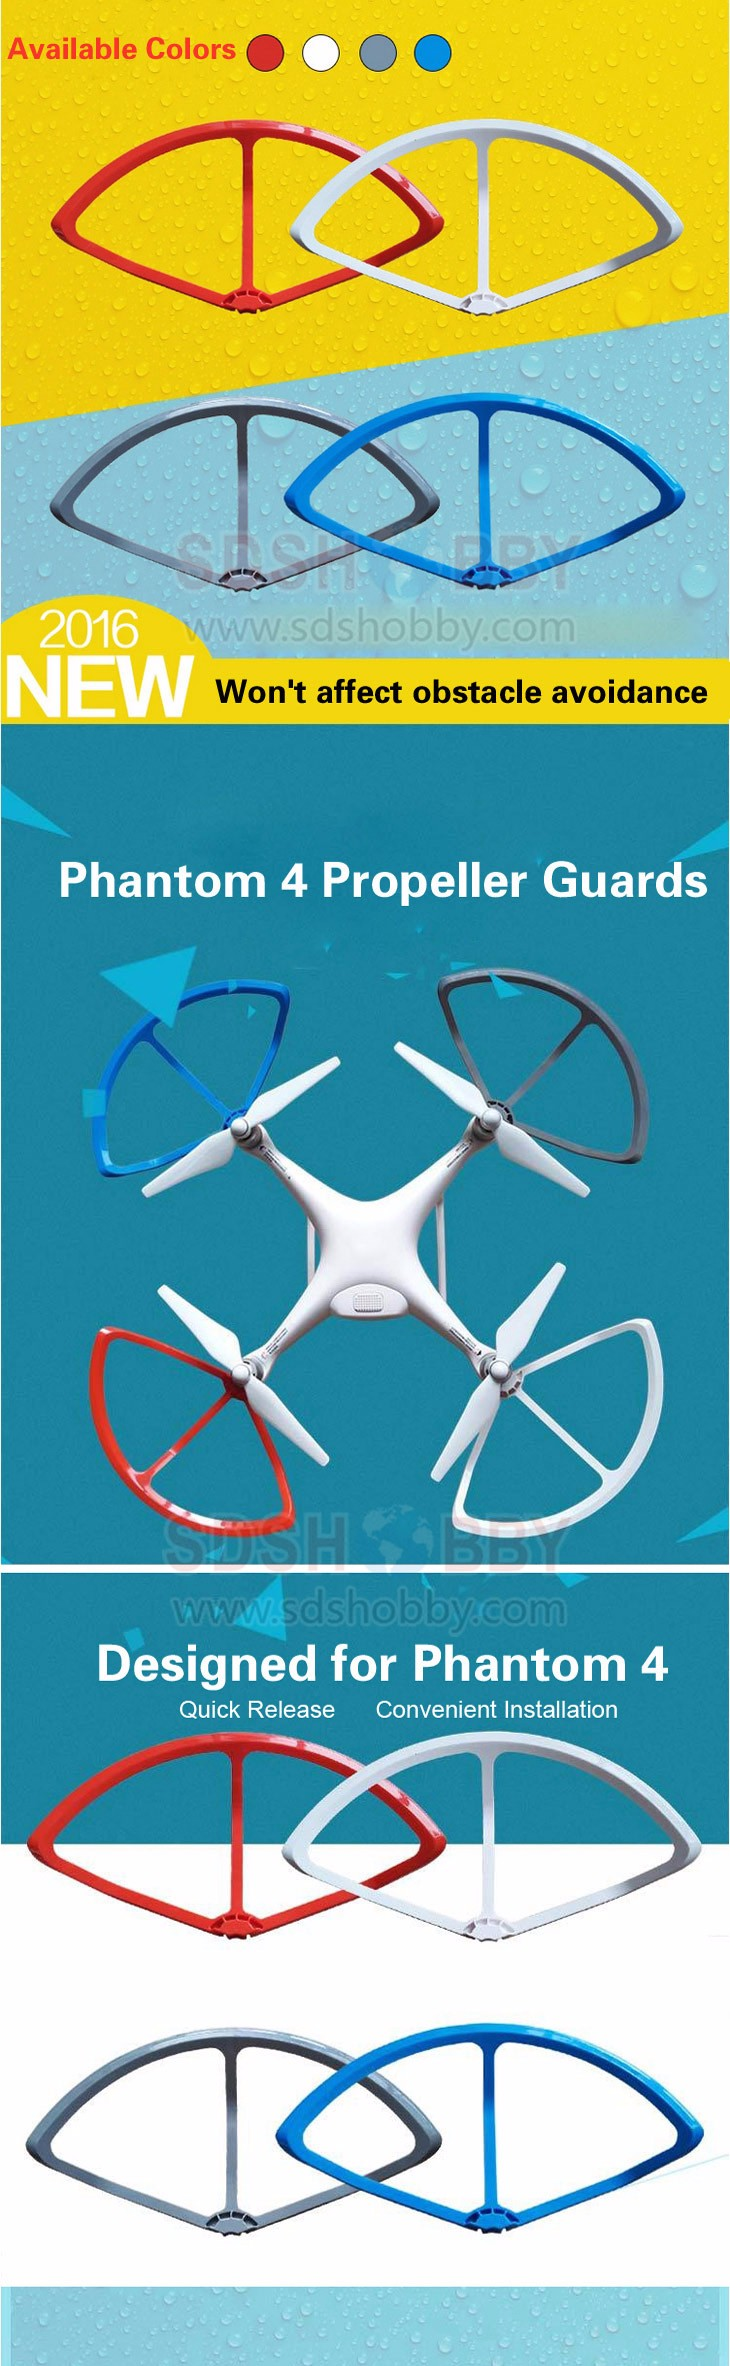 1set New Phantom 4 Quick-release Propeller Guards Protectors Shielding Rings Bumpers for DJI Phantom4/PRO/PRO+ Fortress Design